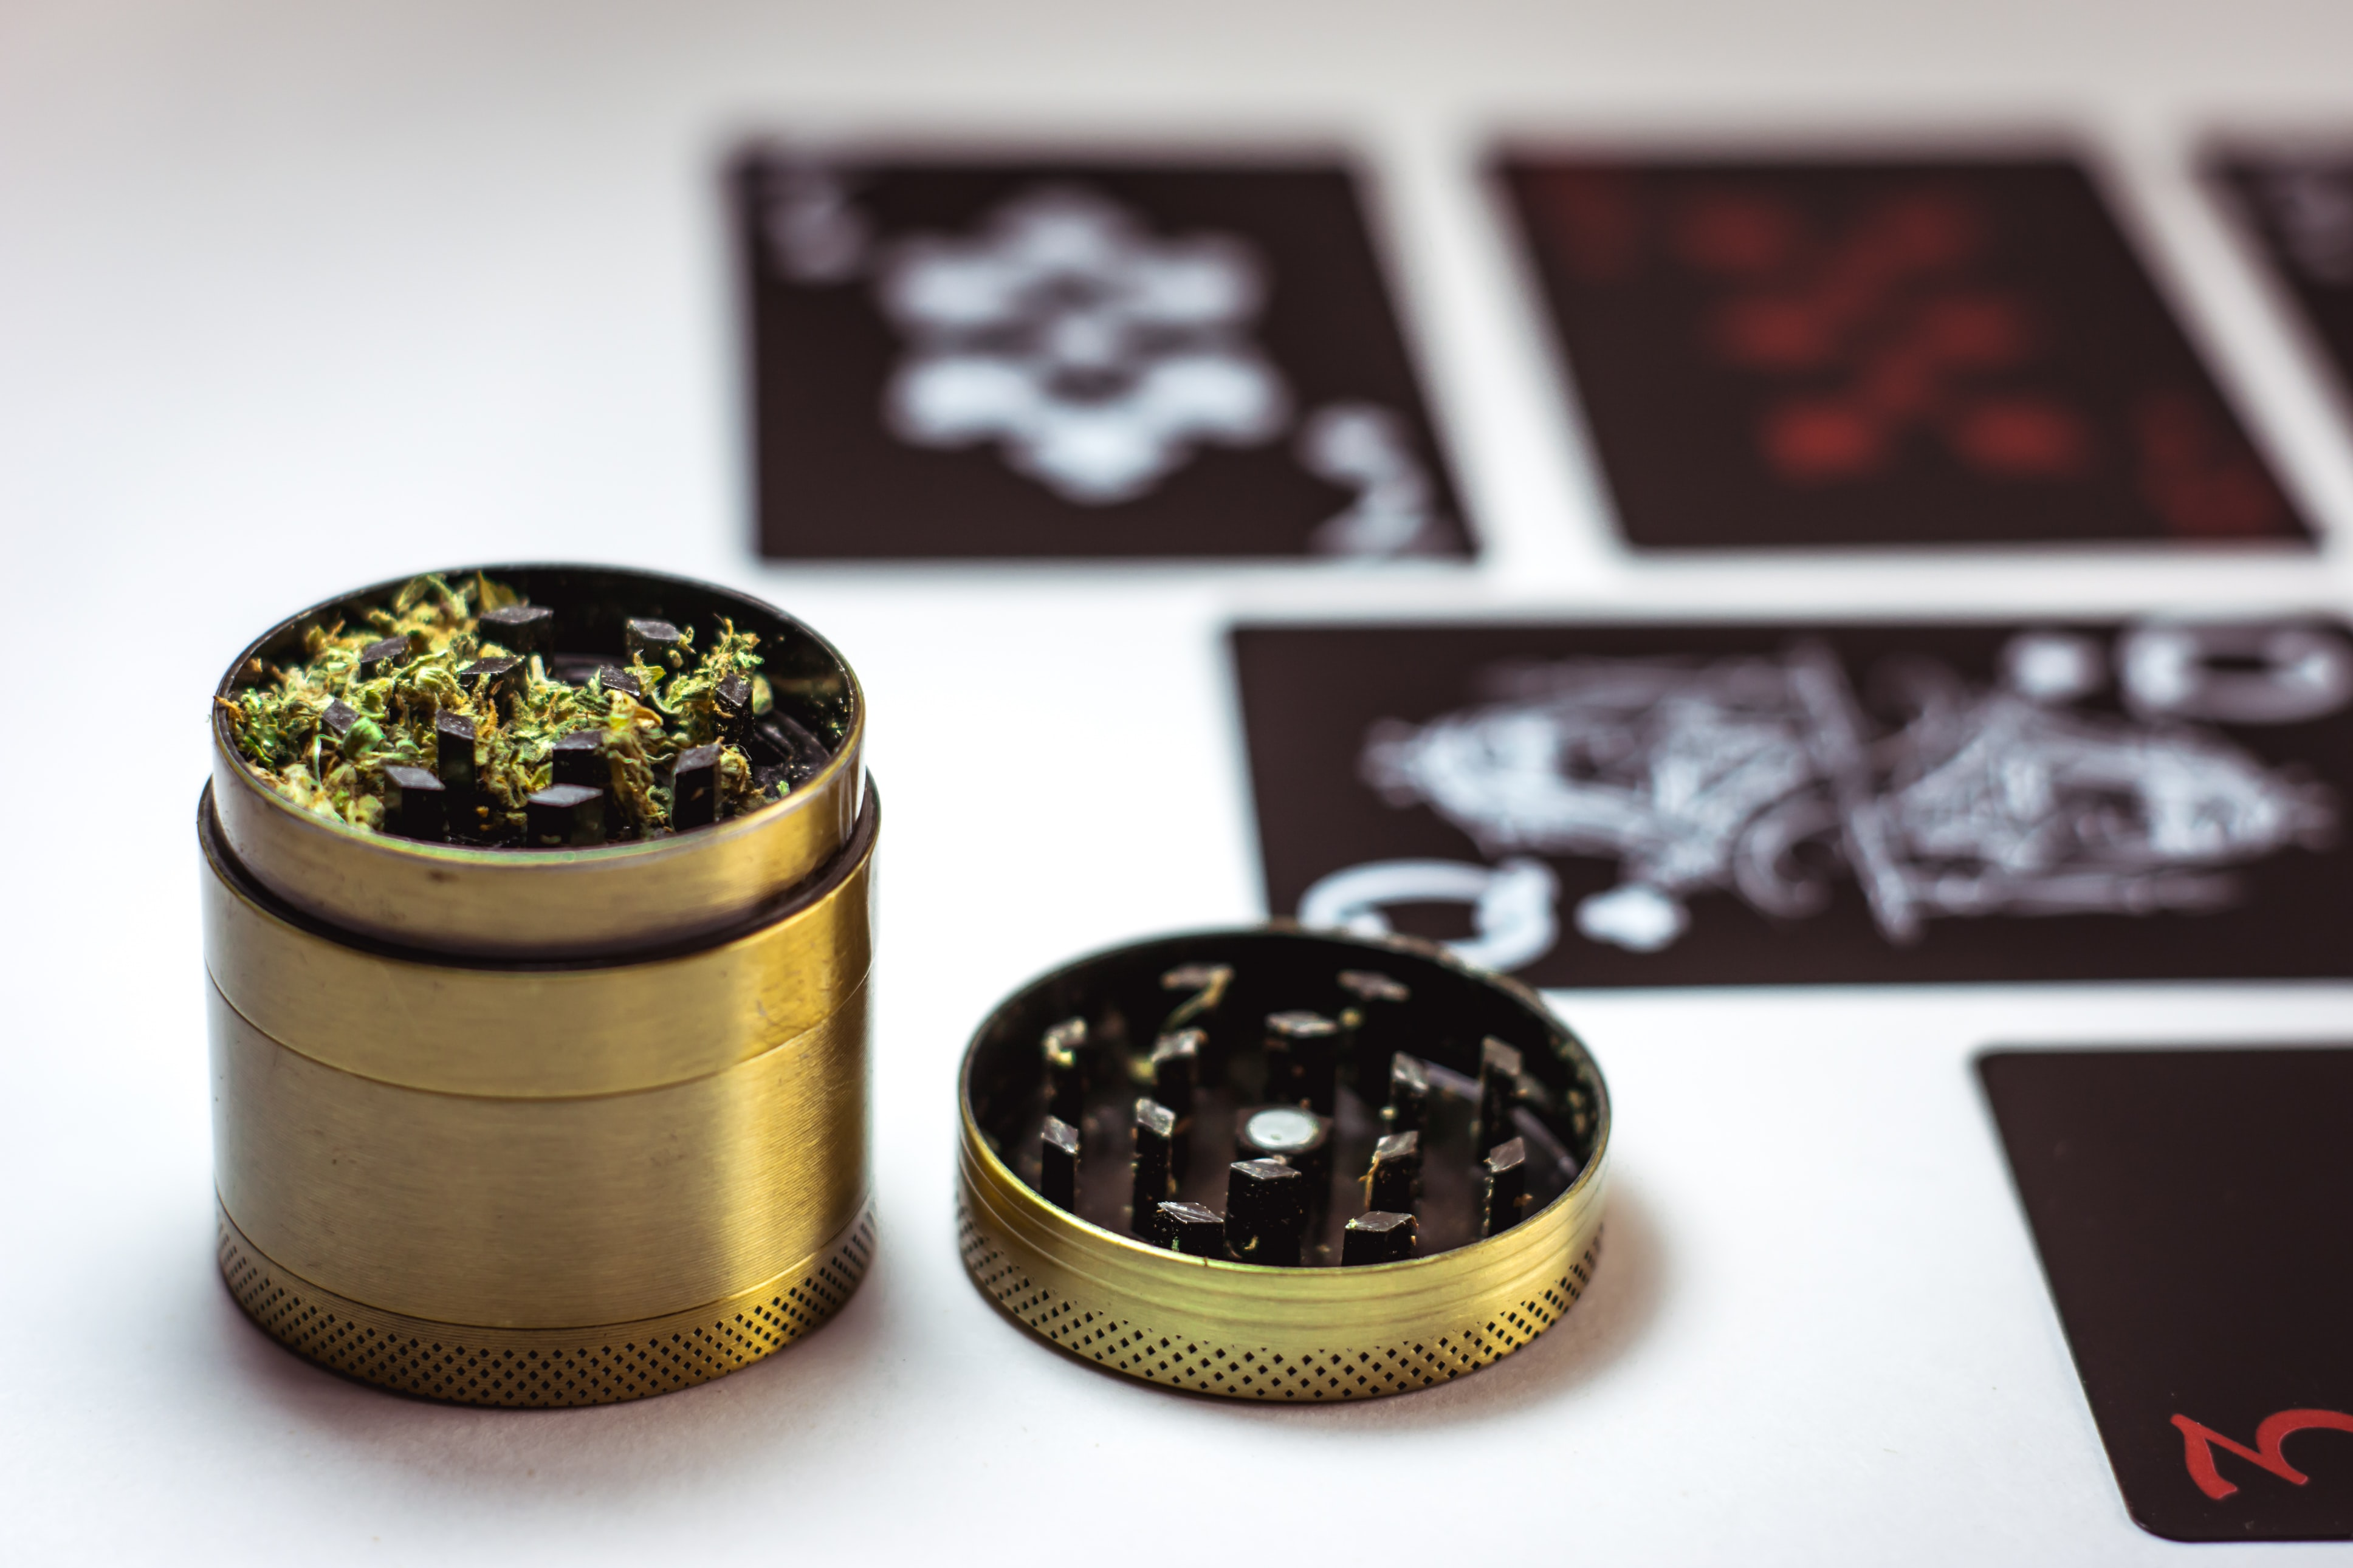 Why Should You Invest in a High-Quality Grinder